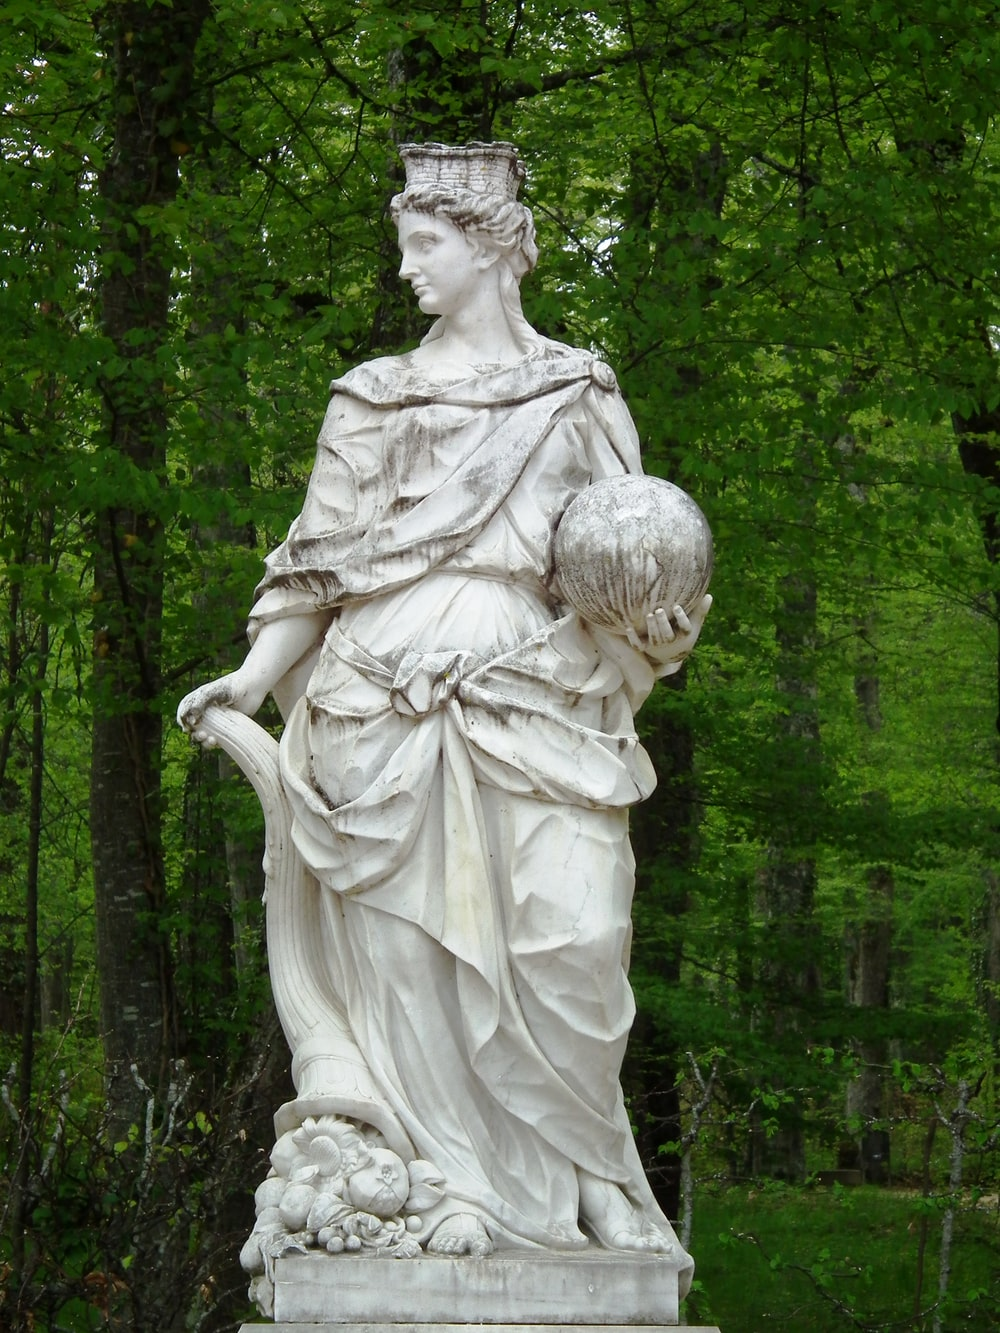 angel statue near green trees during daytime